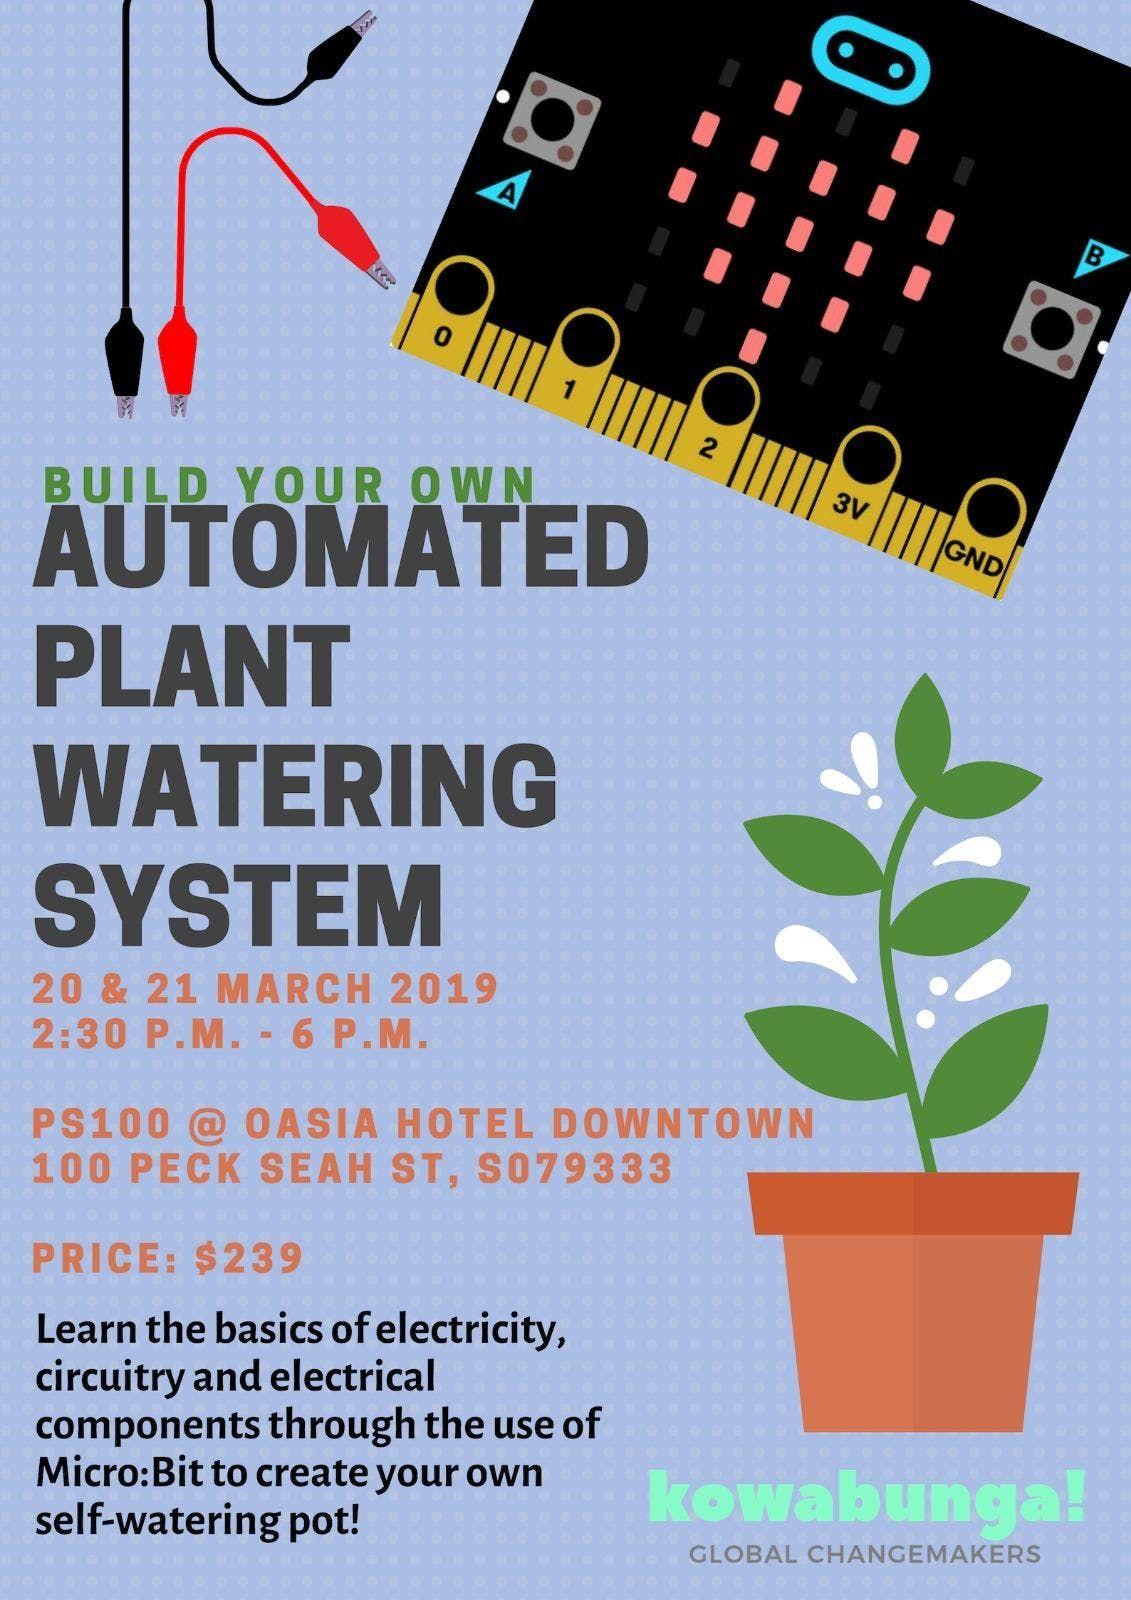 Build Your Own Automated Plant Watering System at PS100, Singapore